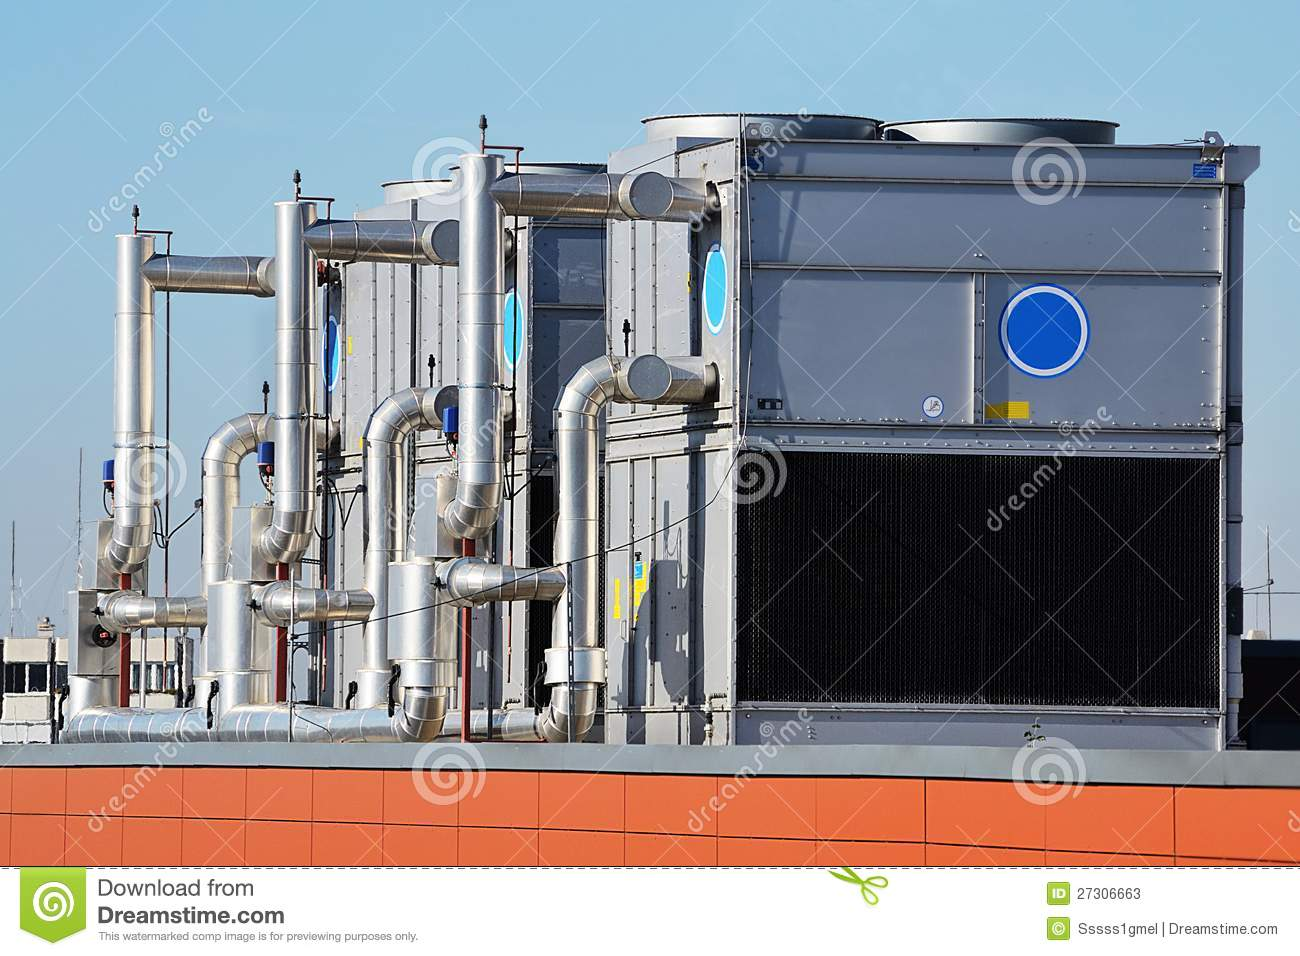 This photograph represents an industrial air conditioning unit cooling  #AF421C